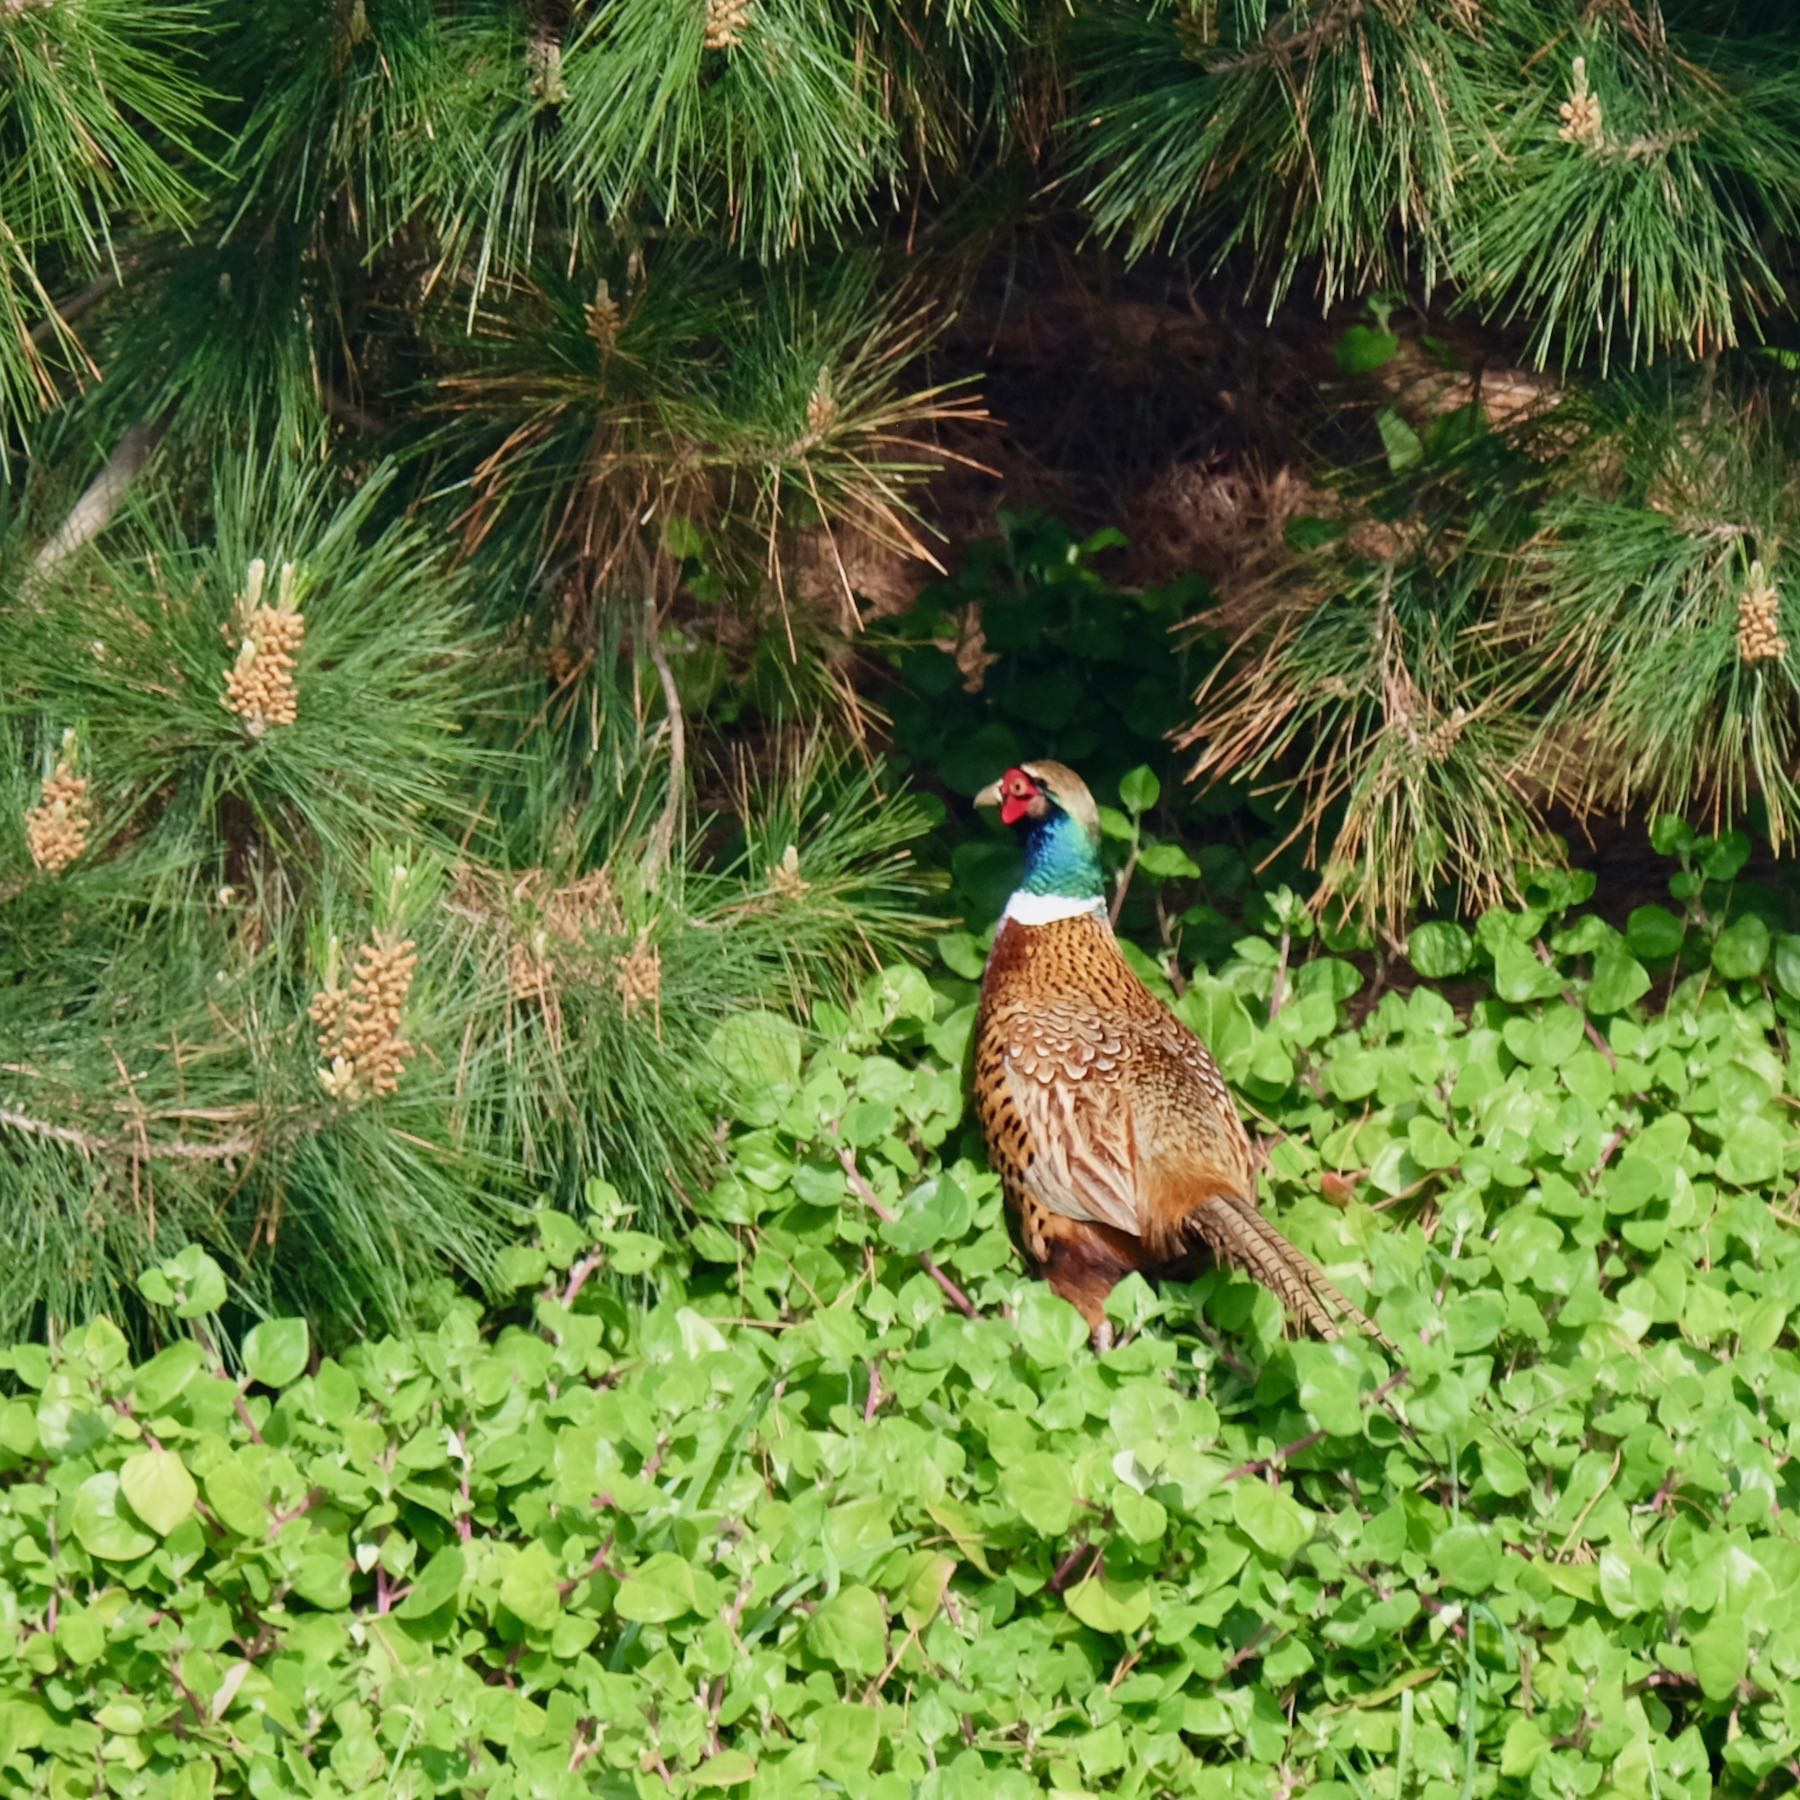 Male pheasant with shiny green neck with a white ring as the base and long tail, amongst weeds and trees.